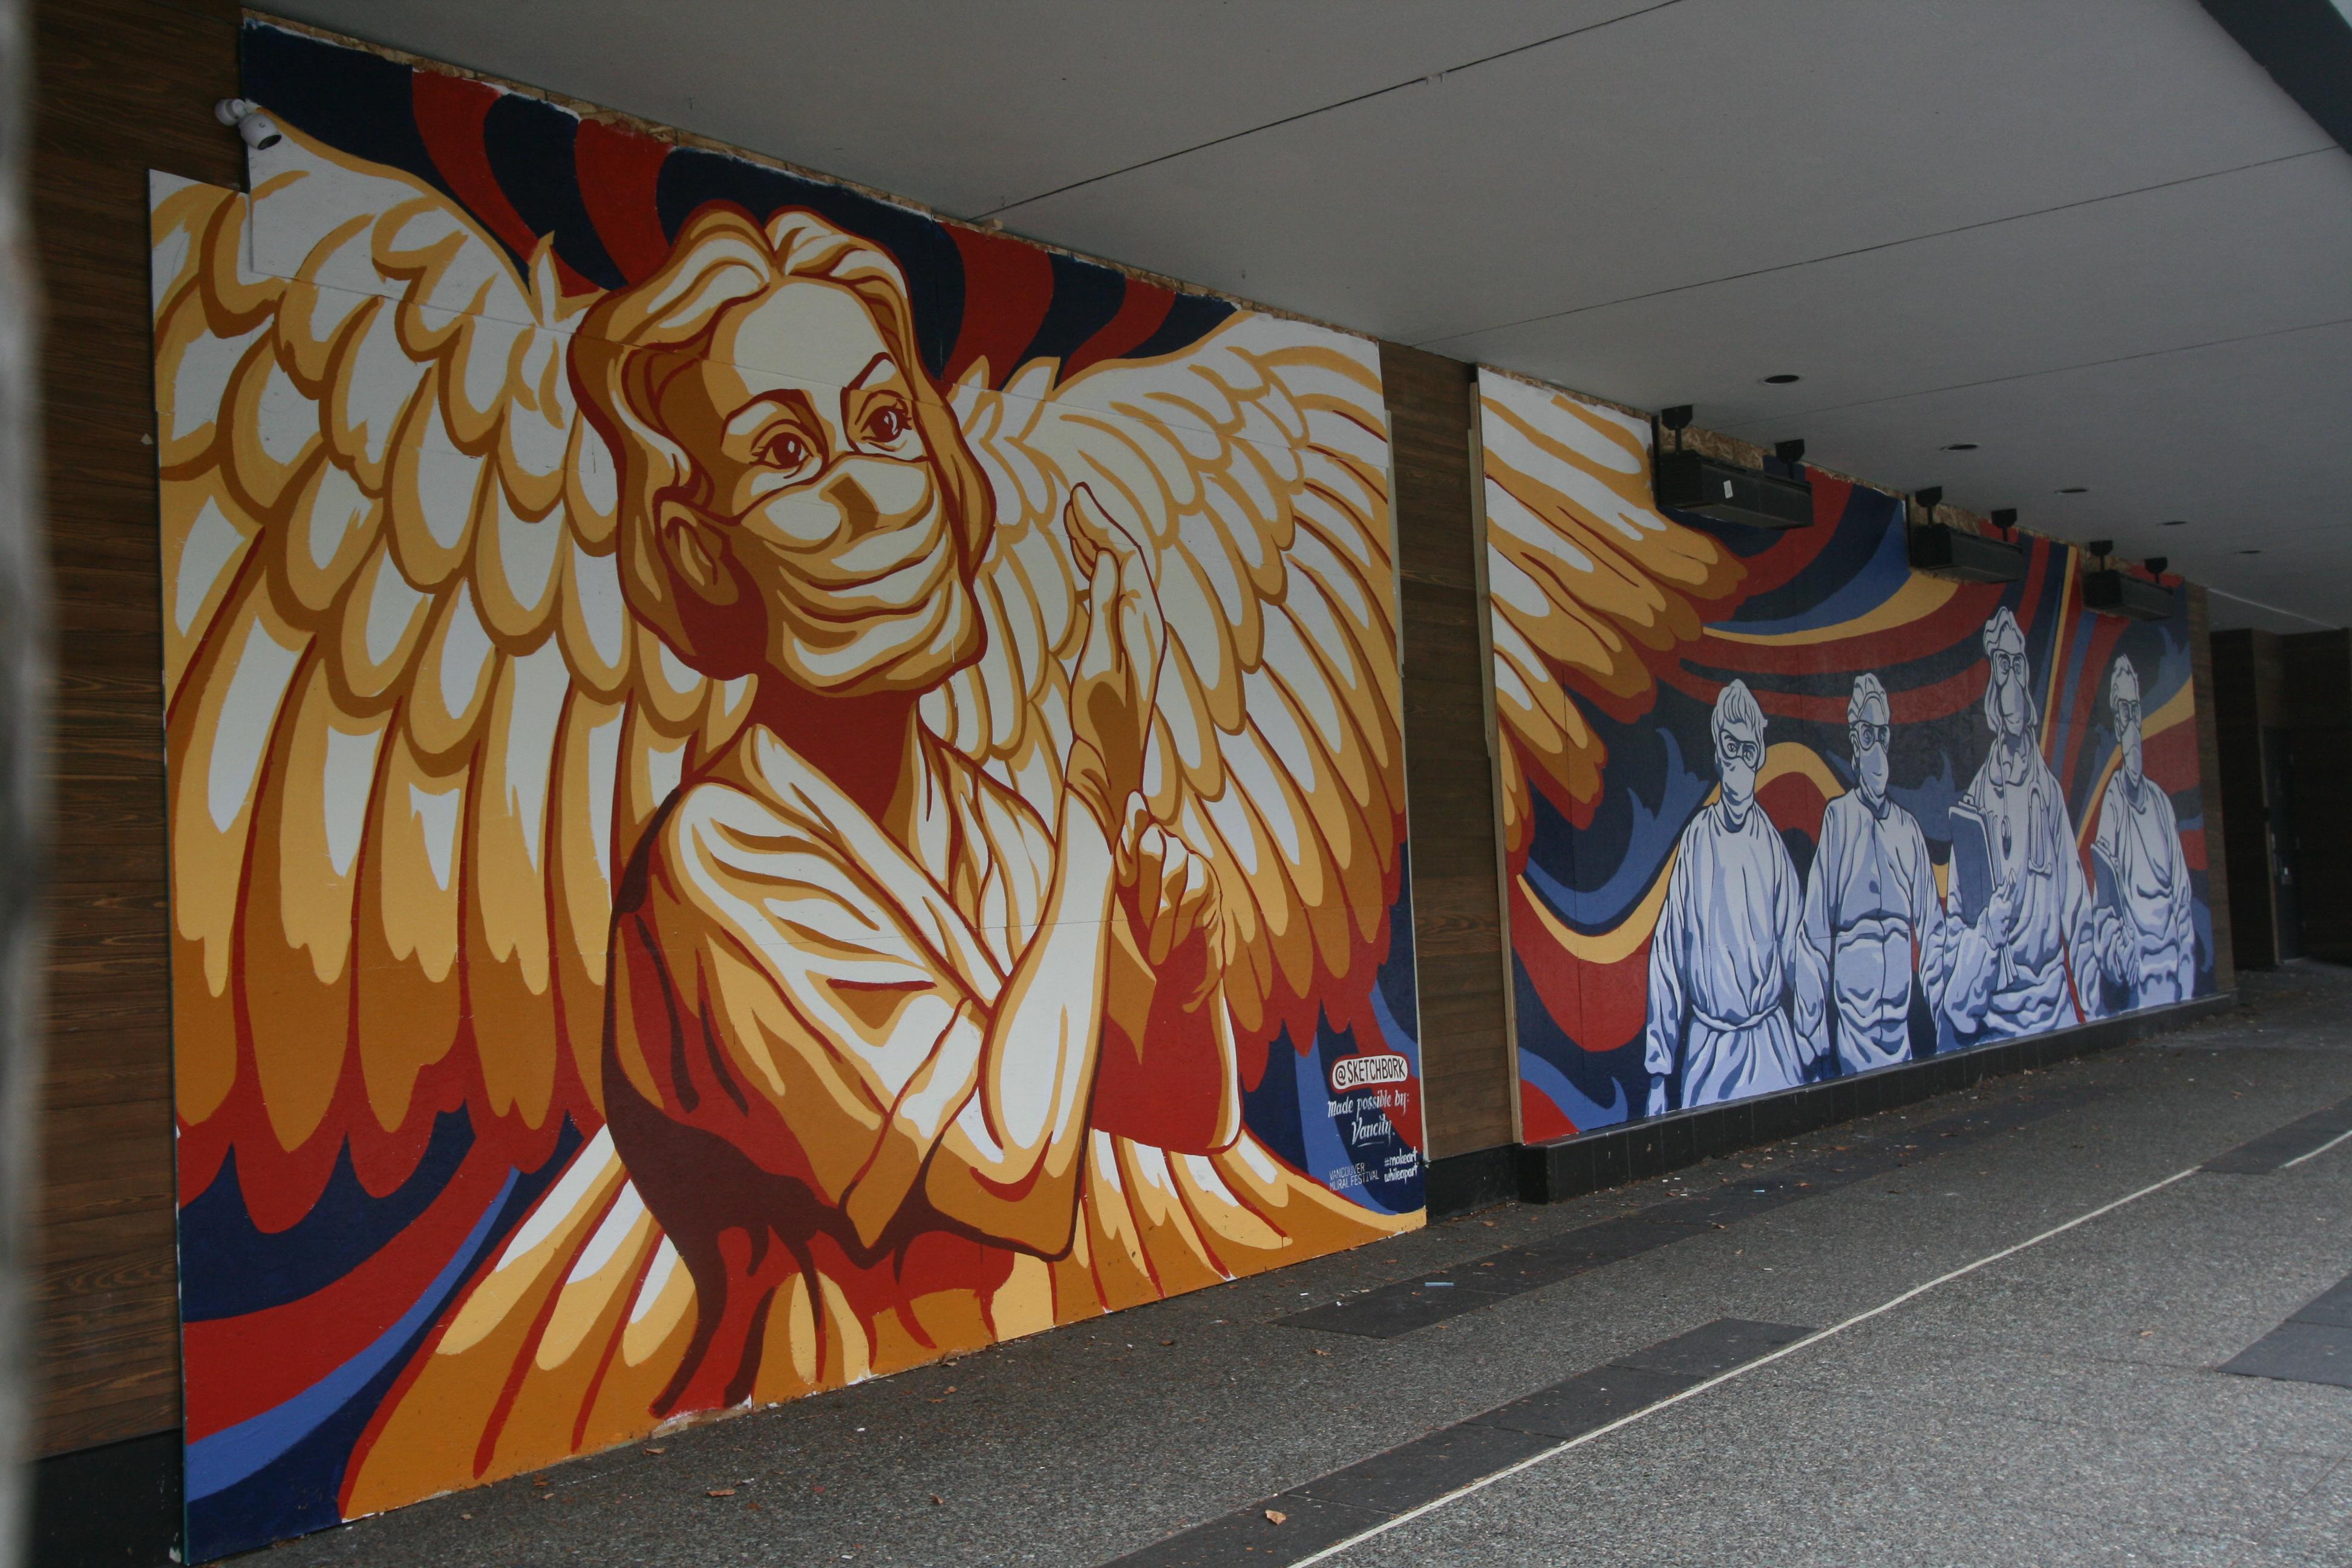 Granville-Street-Pandemic-Mural-Vancouver-2019-8322-copyright-Shelagh-Donnelly